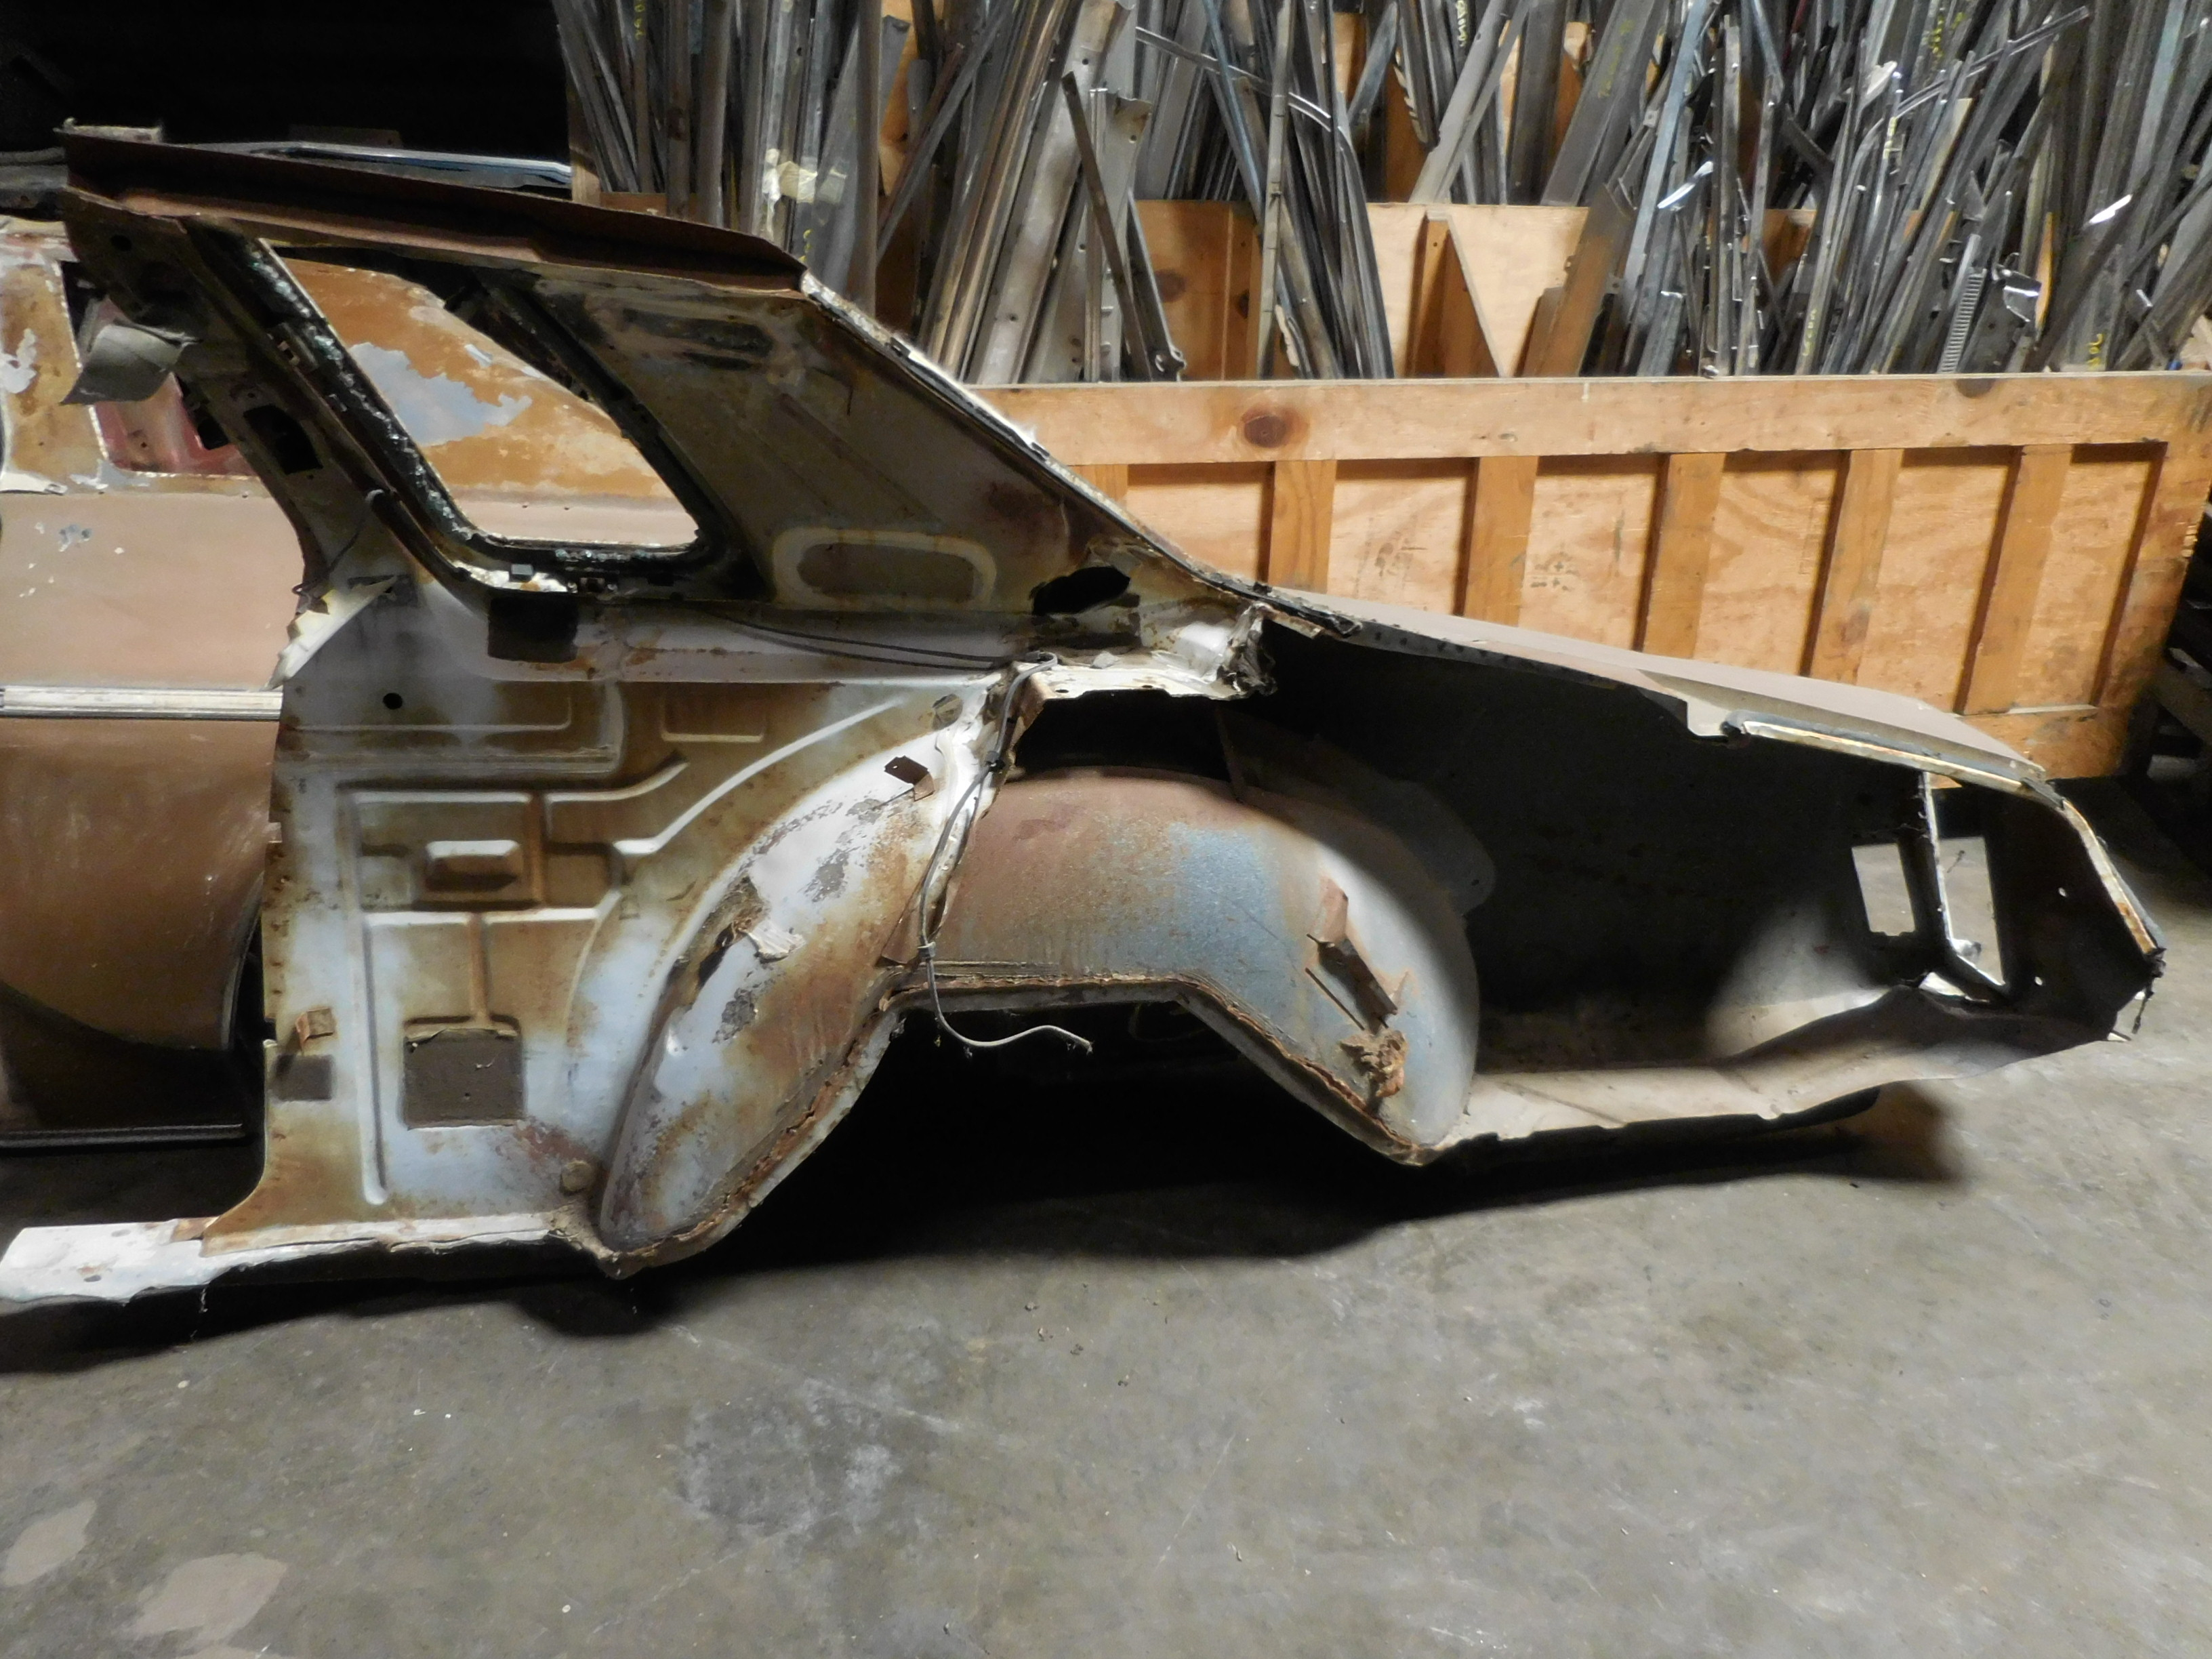 1973 Oldsmobile Cutlass Supreme Rear Left and Right Quarter Panels | GM Sports